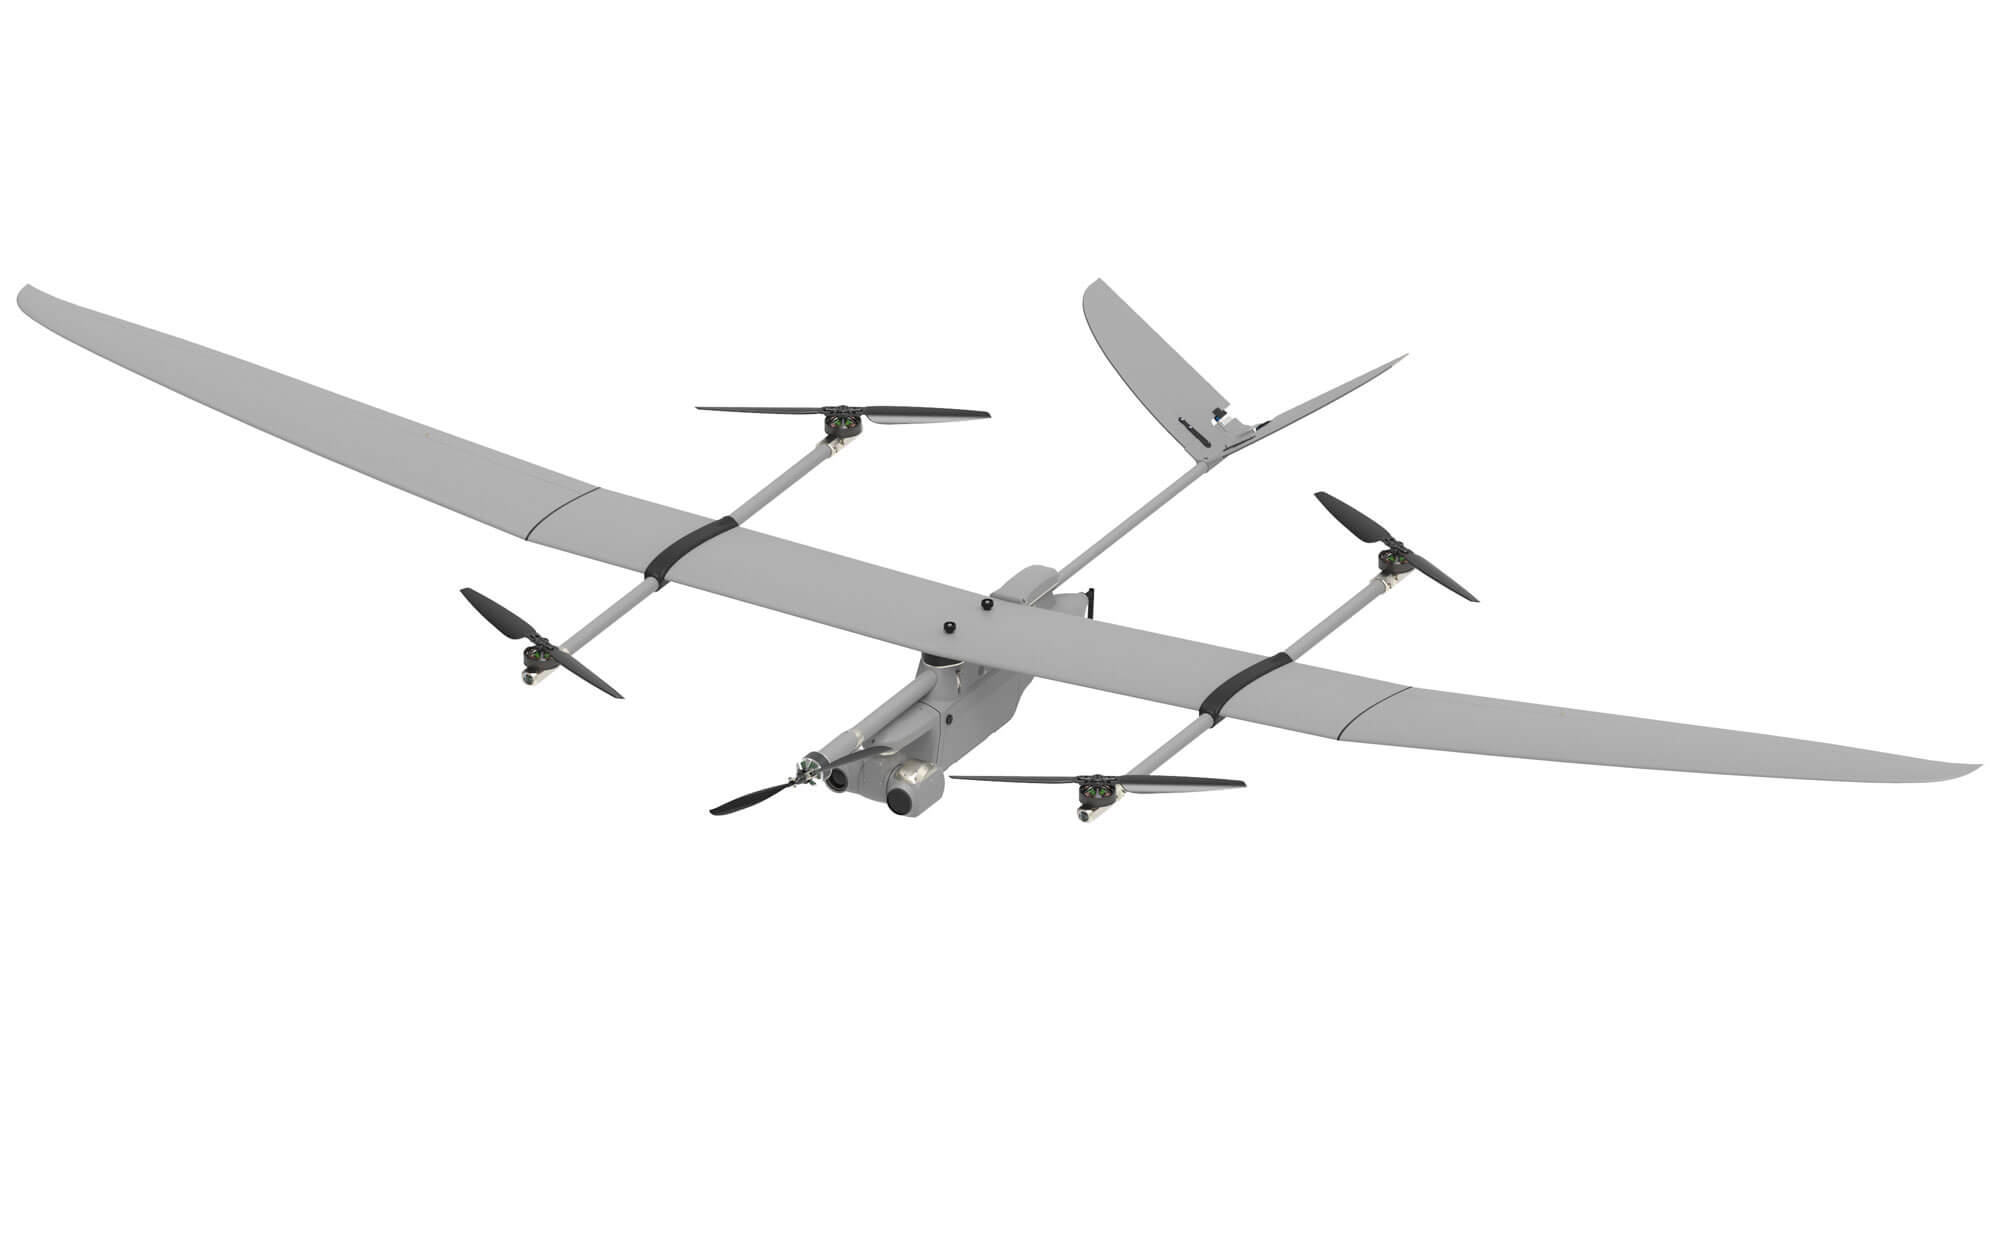 Threod Systems EOS mini VTOL UAS